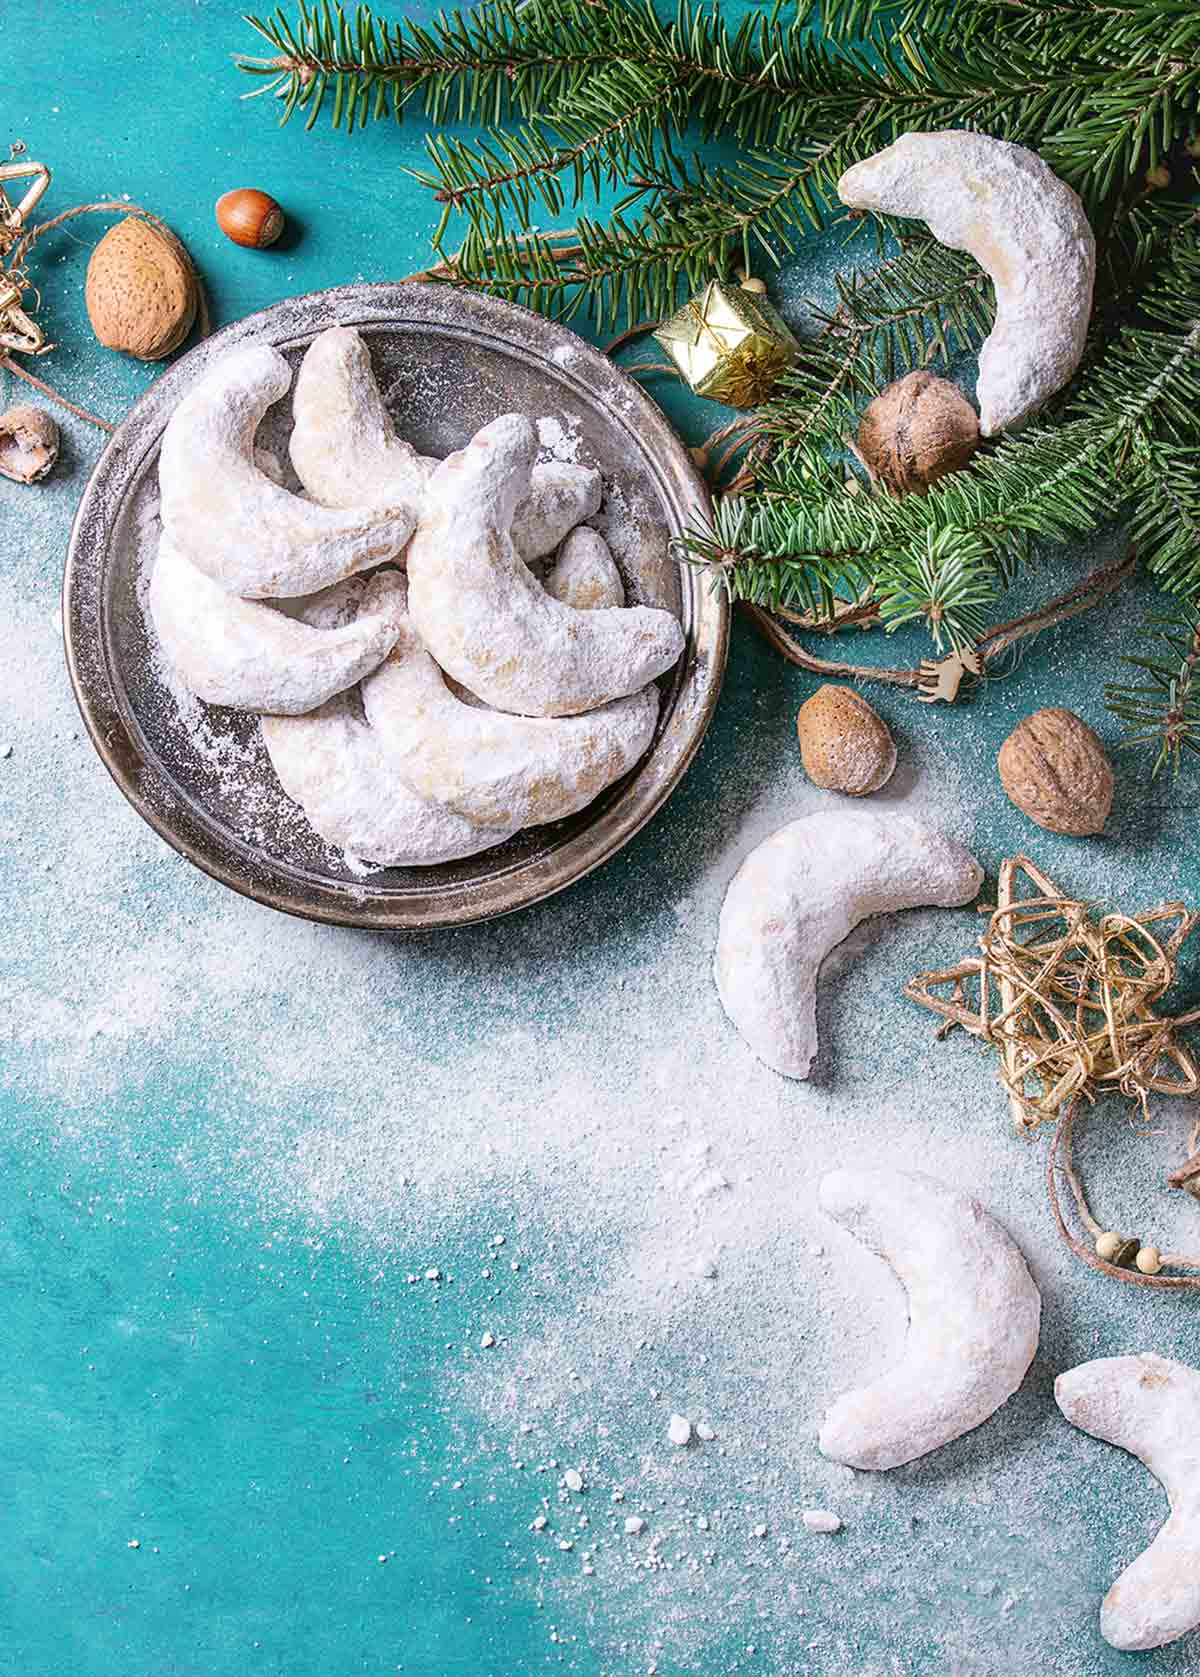 A pile of crescent-shaped cookies on a platter with greenery and Christmas ornaments on the side